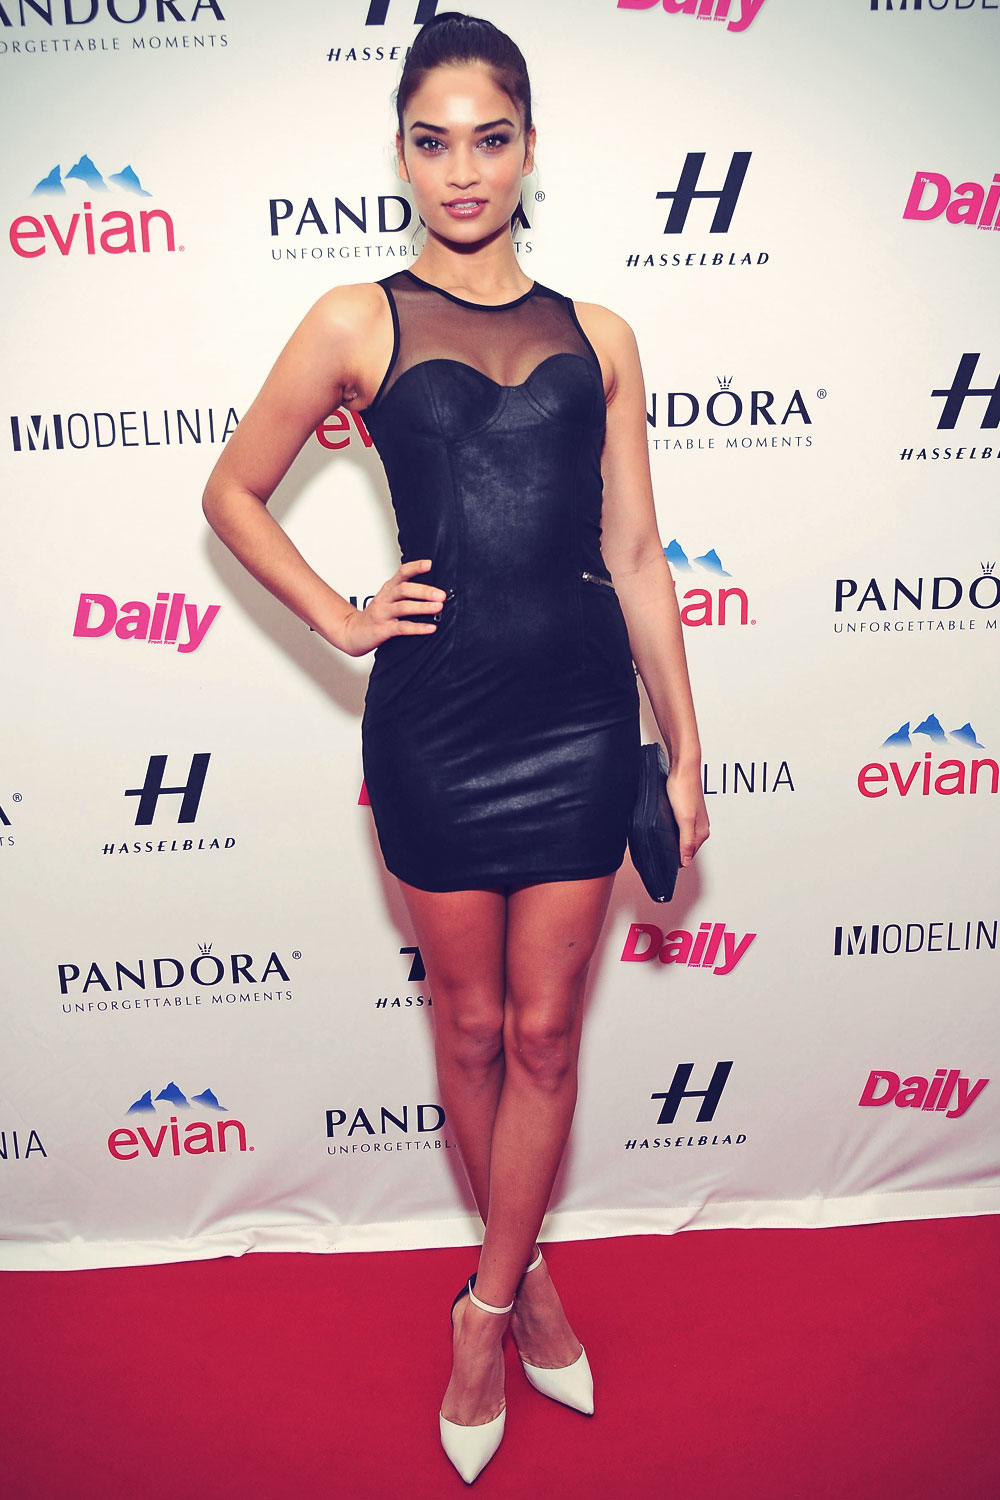 Shanina Shaik attends Models Issue Party